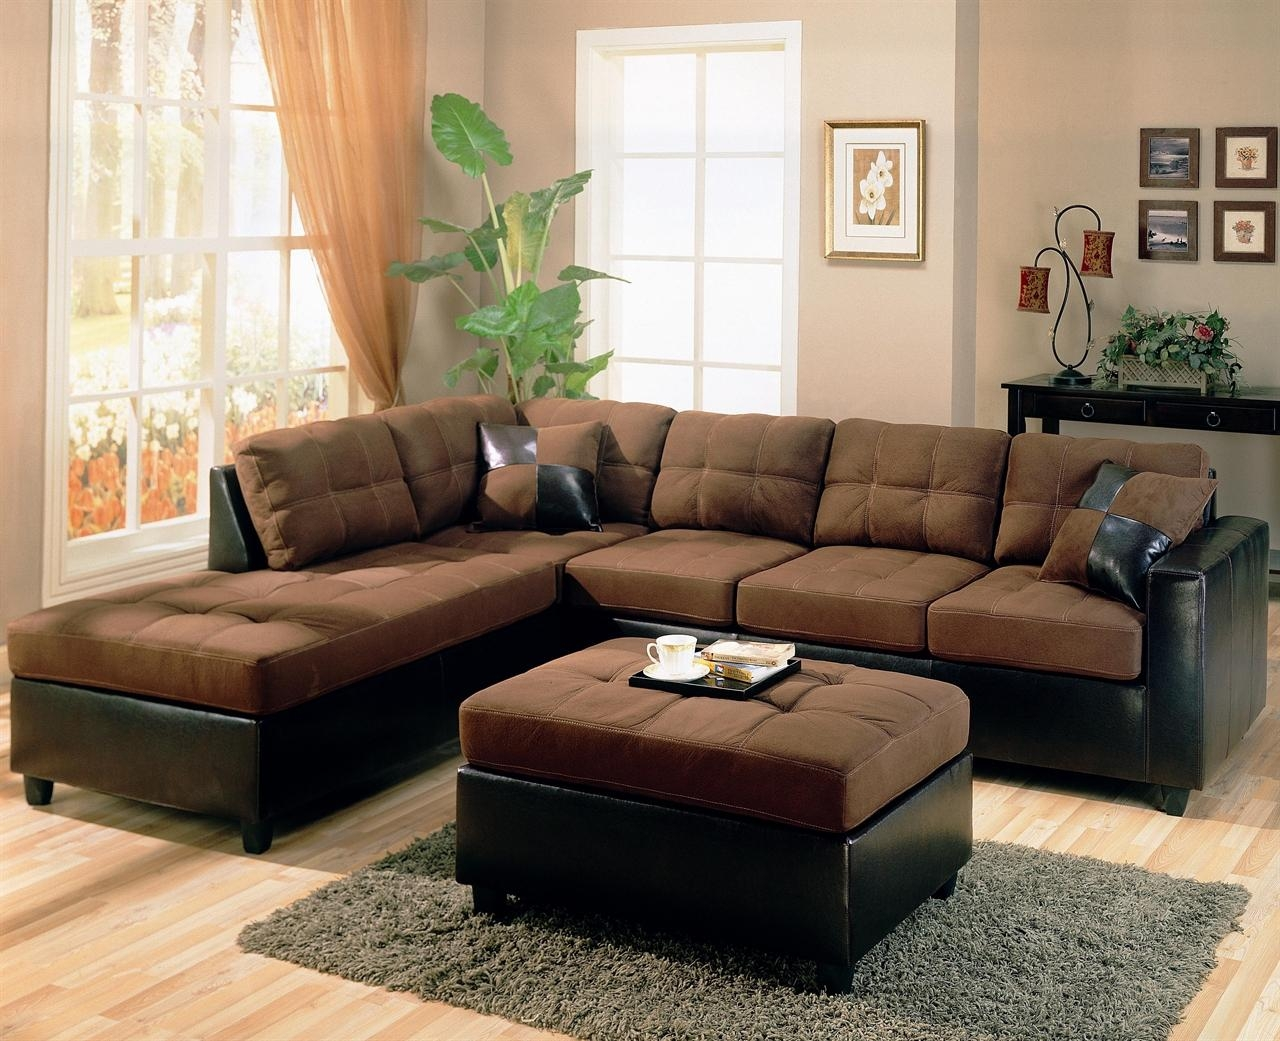 Furniture Stores Kent | Cheap Furniture Tacoma | Lynnwood Throughout Two Tone Sofas (Image 9 of 20)